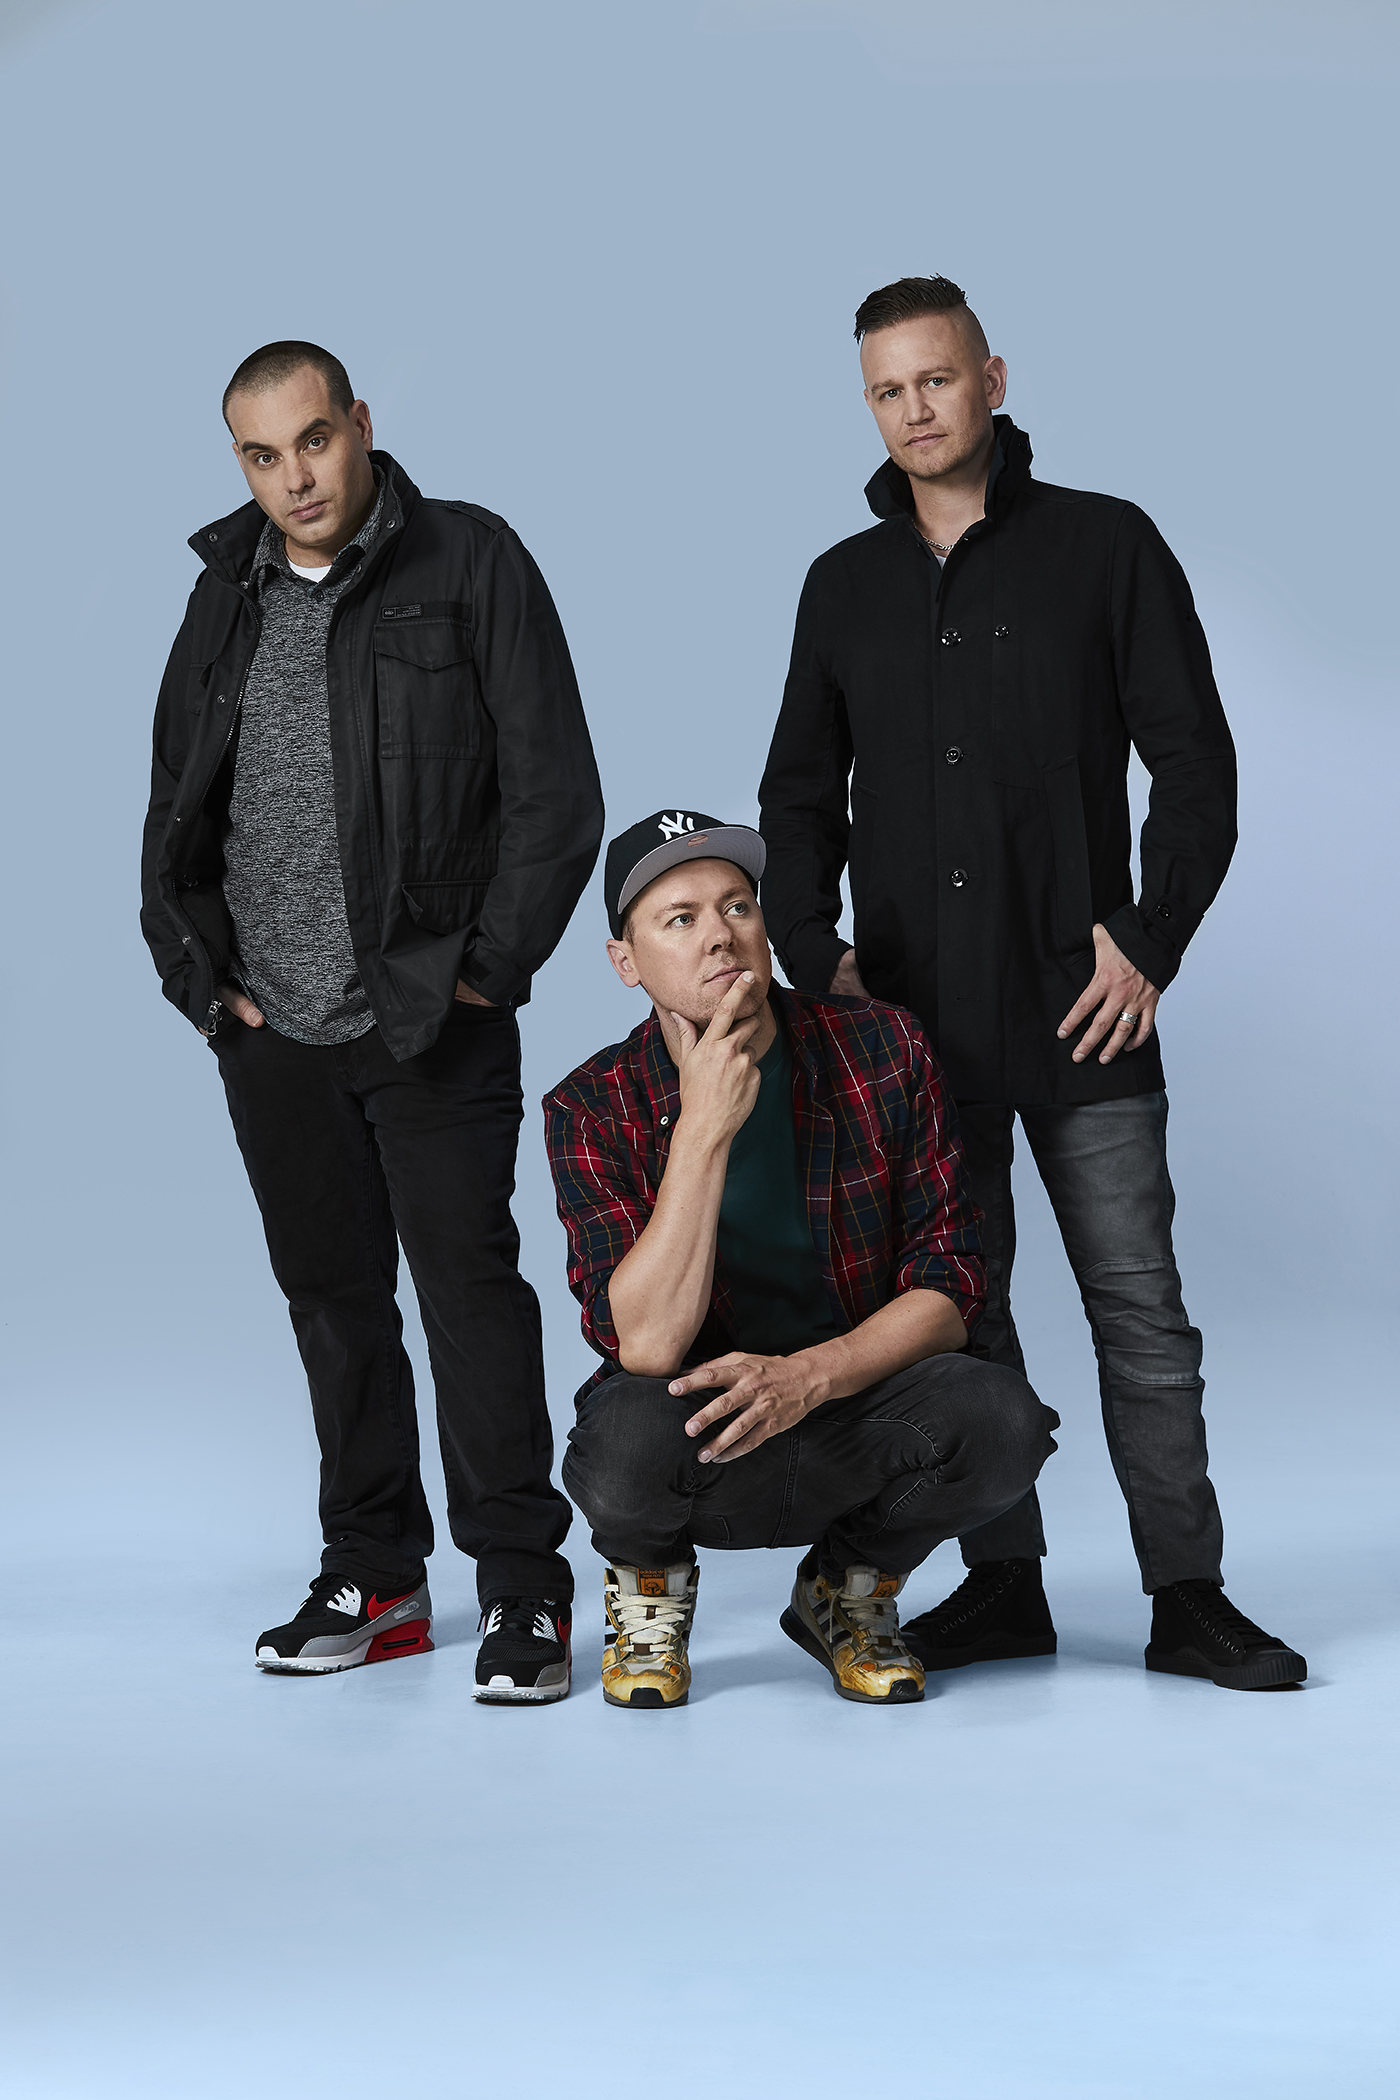 Hilltop Hoods are ambassadors for Record Store Day 2021